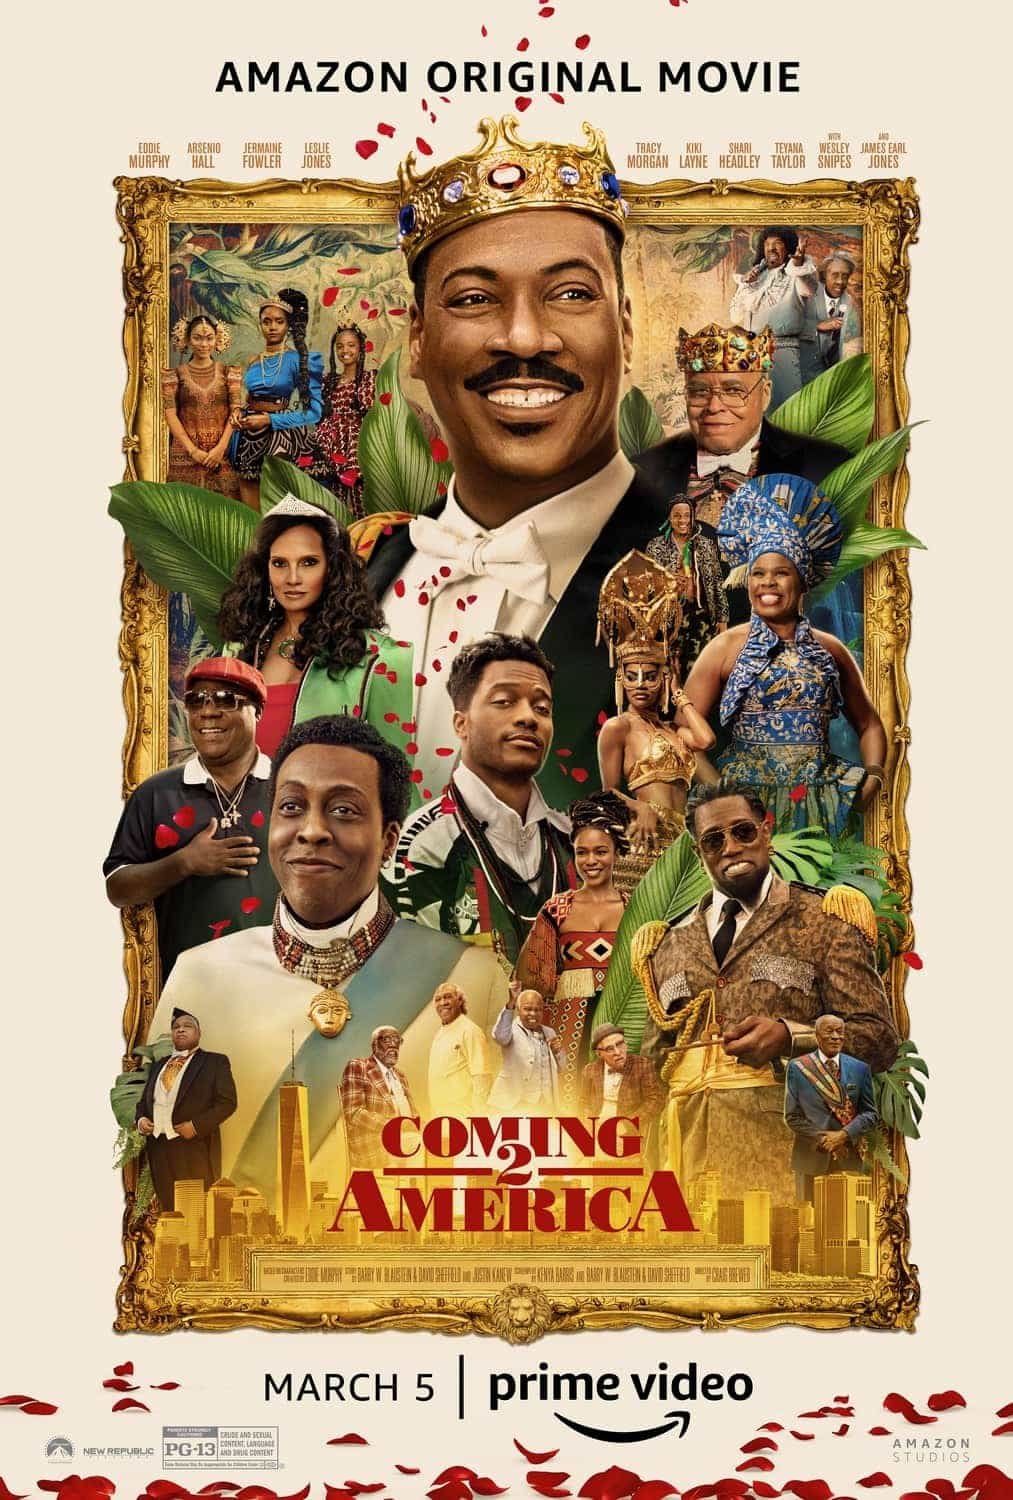 Coming 2 America is given a 12 age rating in the UK for moderate sex references, violence, drug misuse, language, discrimination